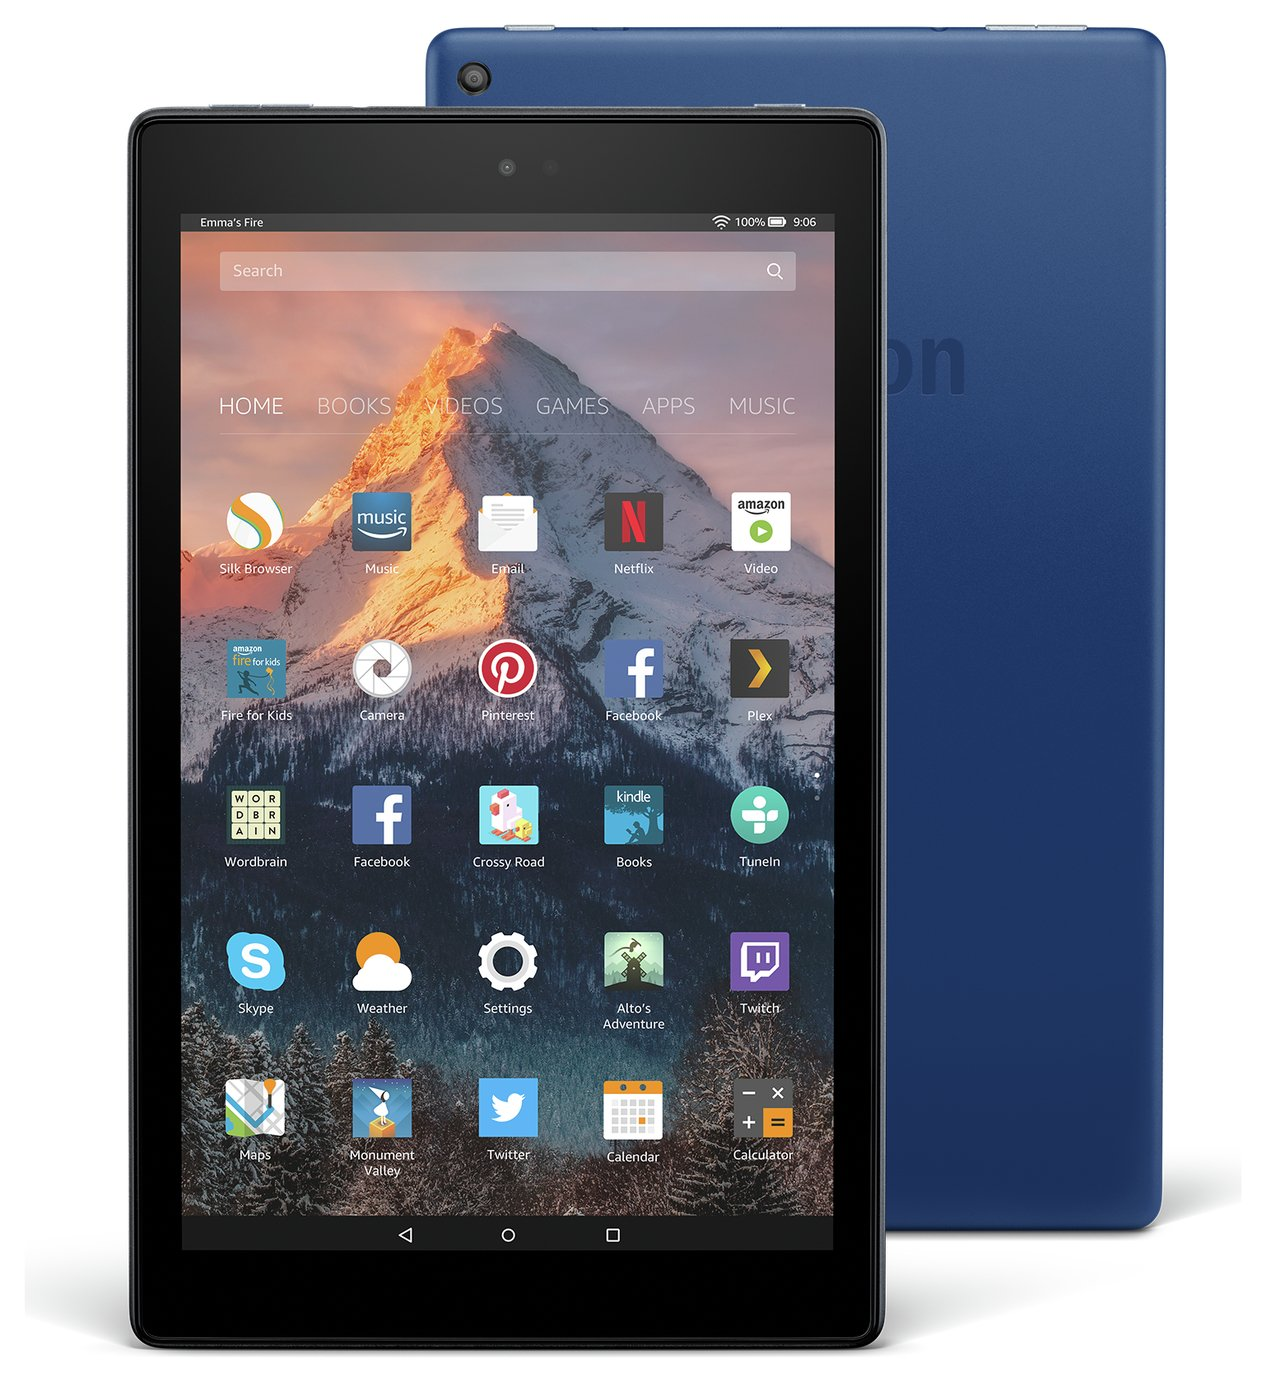 Amazon Fire 10 10.1 Inch 32GB Tablet - Blue from Amazon